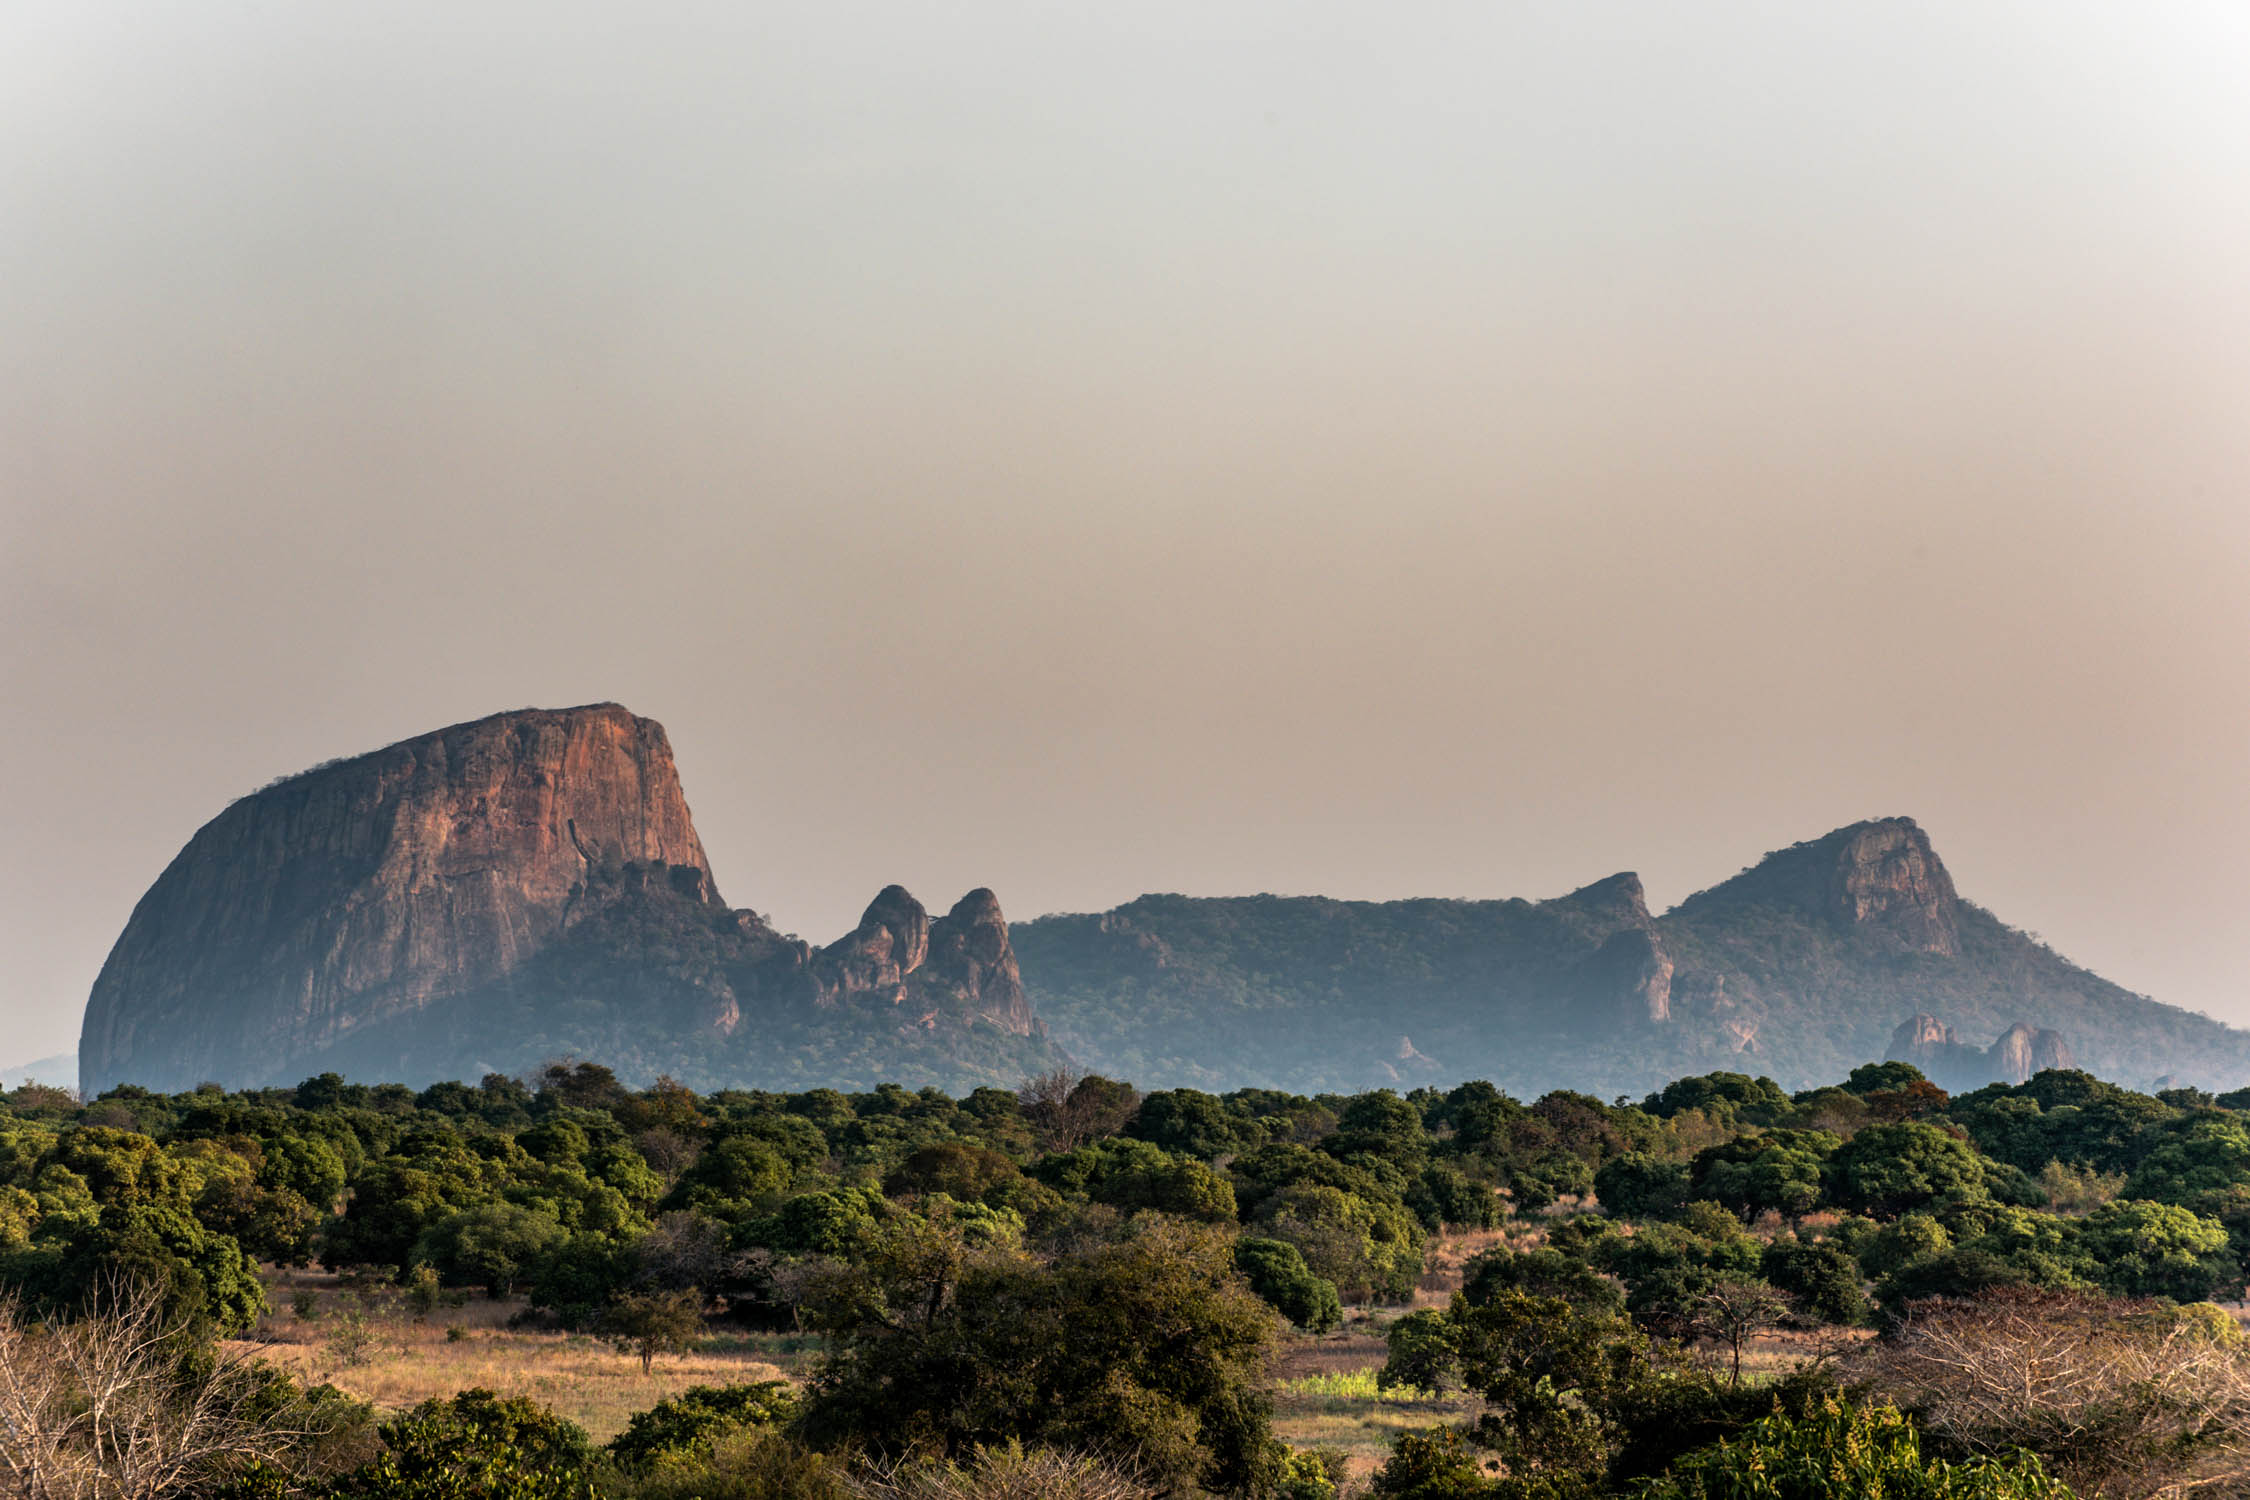 Granite Inselberg in the Selous – Niassa Wildlife Corridor.